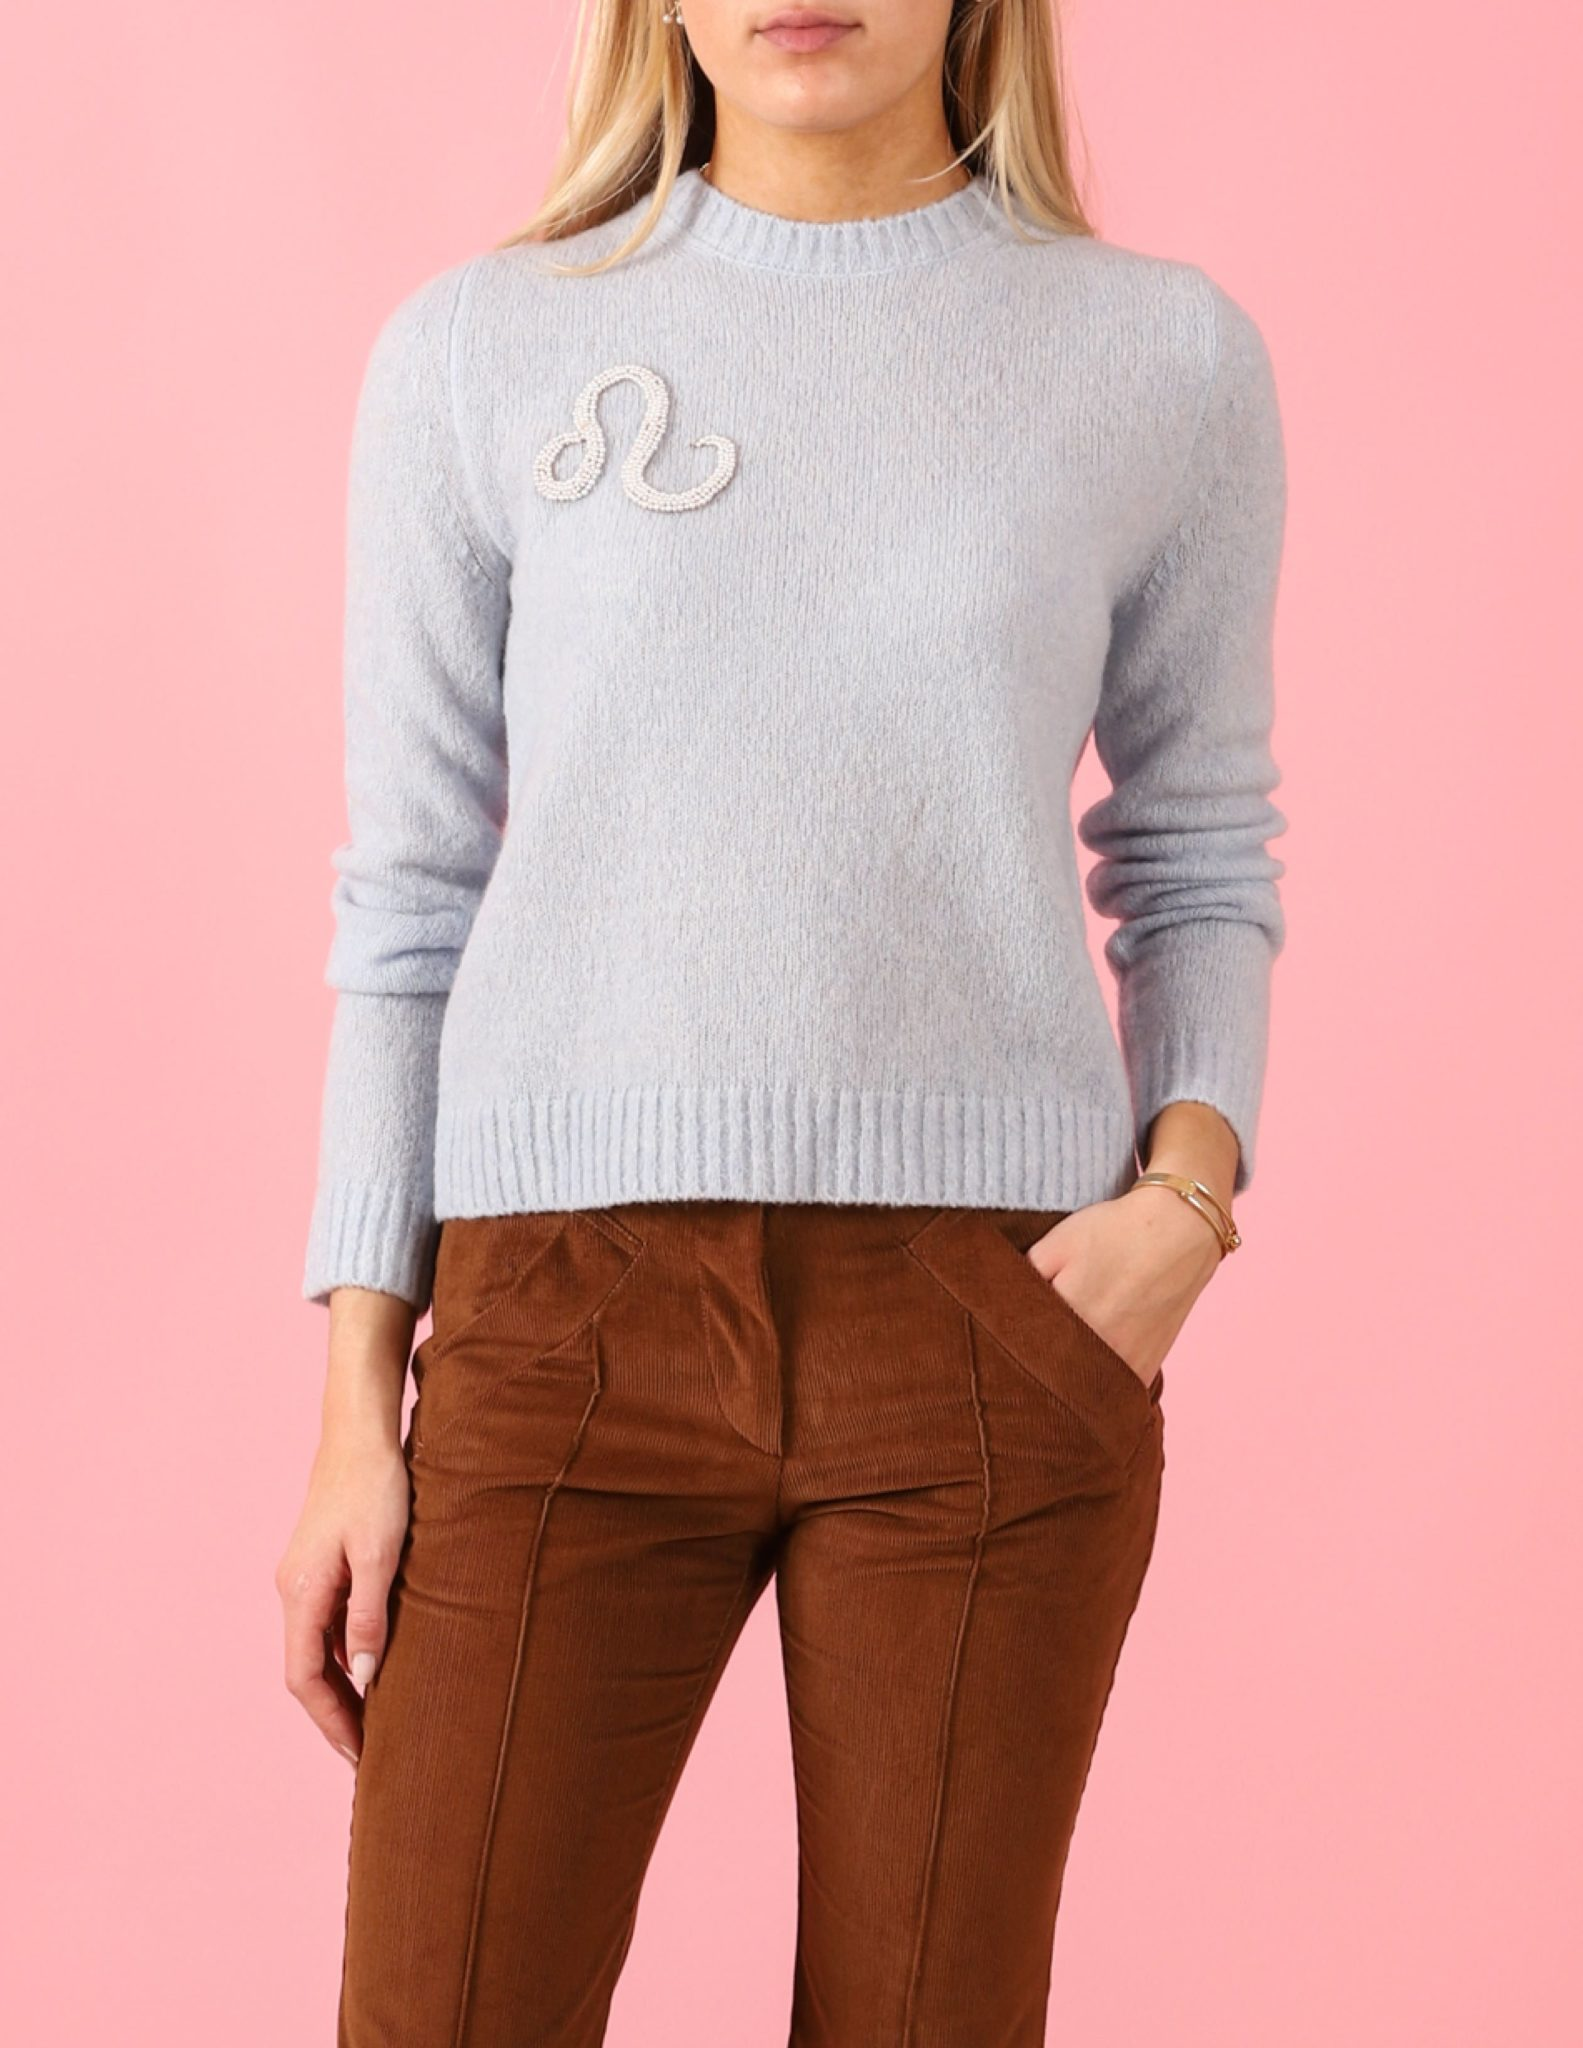 Where To Buy Unique Sweaters: Le Lion Boucle Petite Crew with Zodiac | Rhyme & Reason